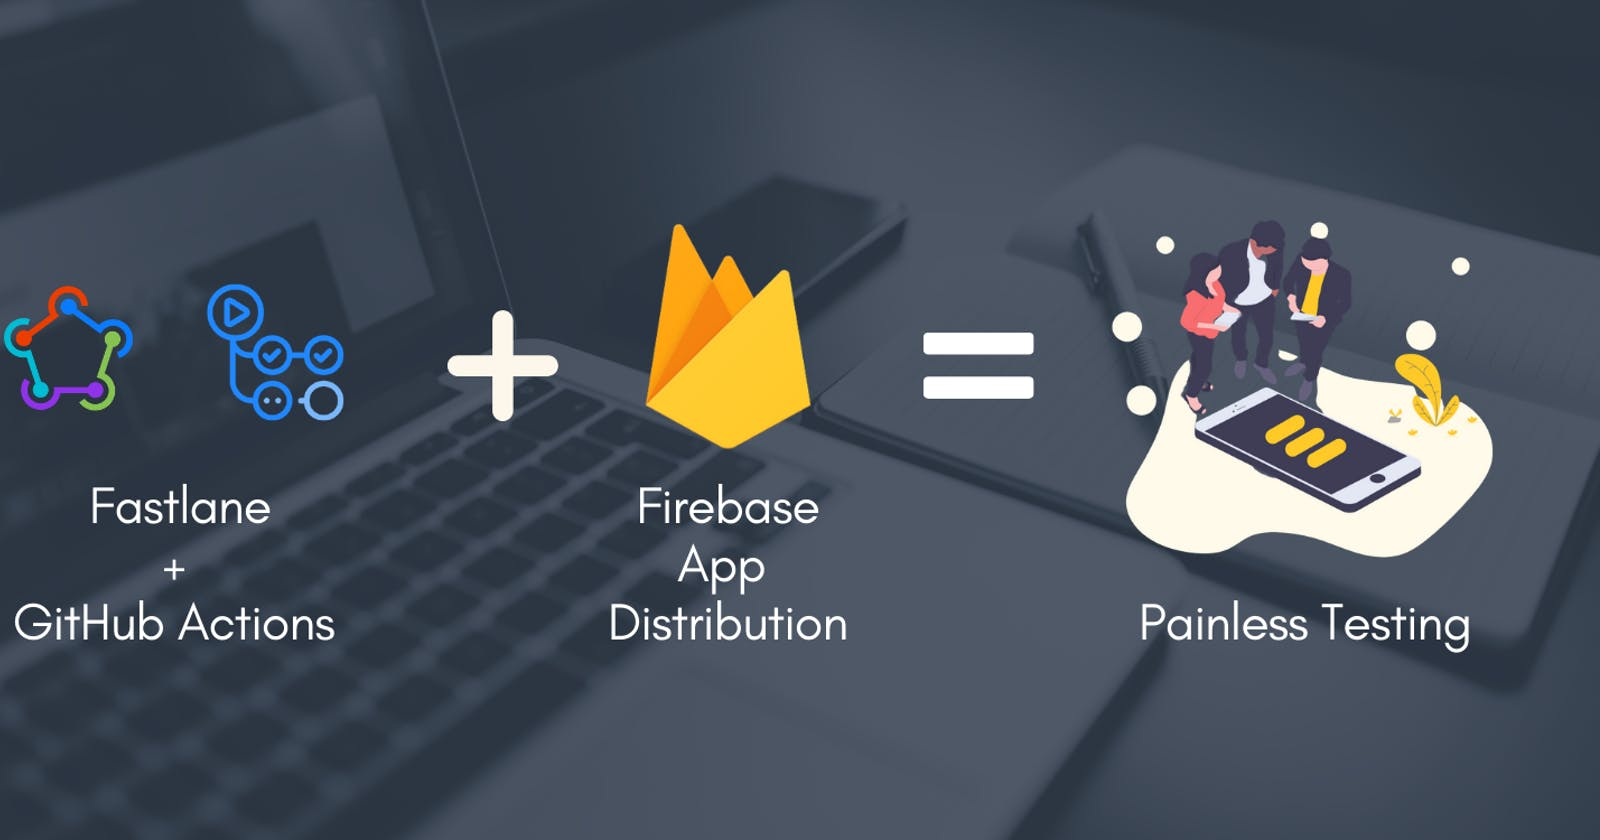 🔥 Quickly distribute your app with Firebase App Distribution using GitHub Actions + Fastlane 🚀